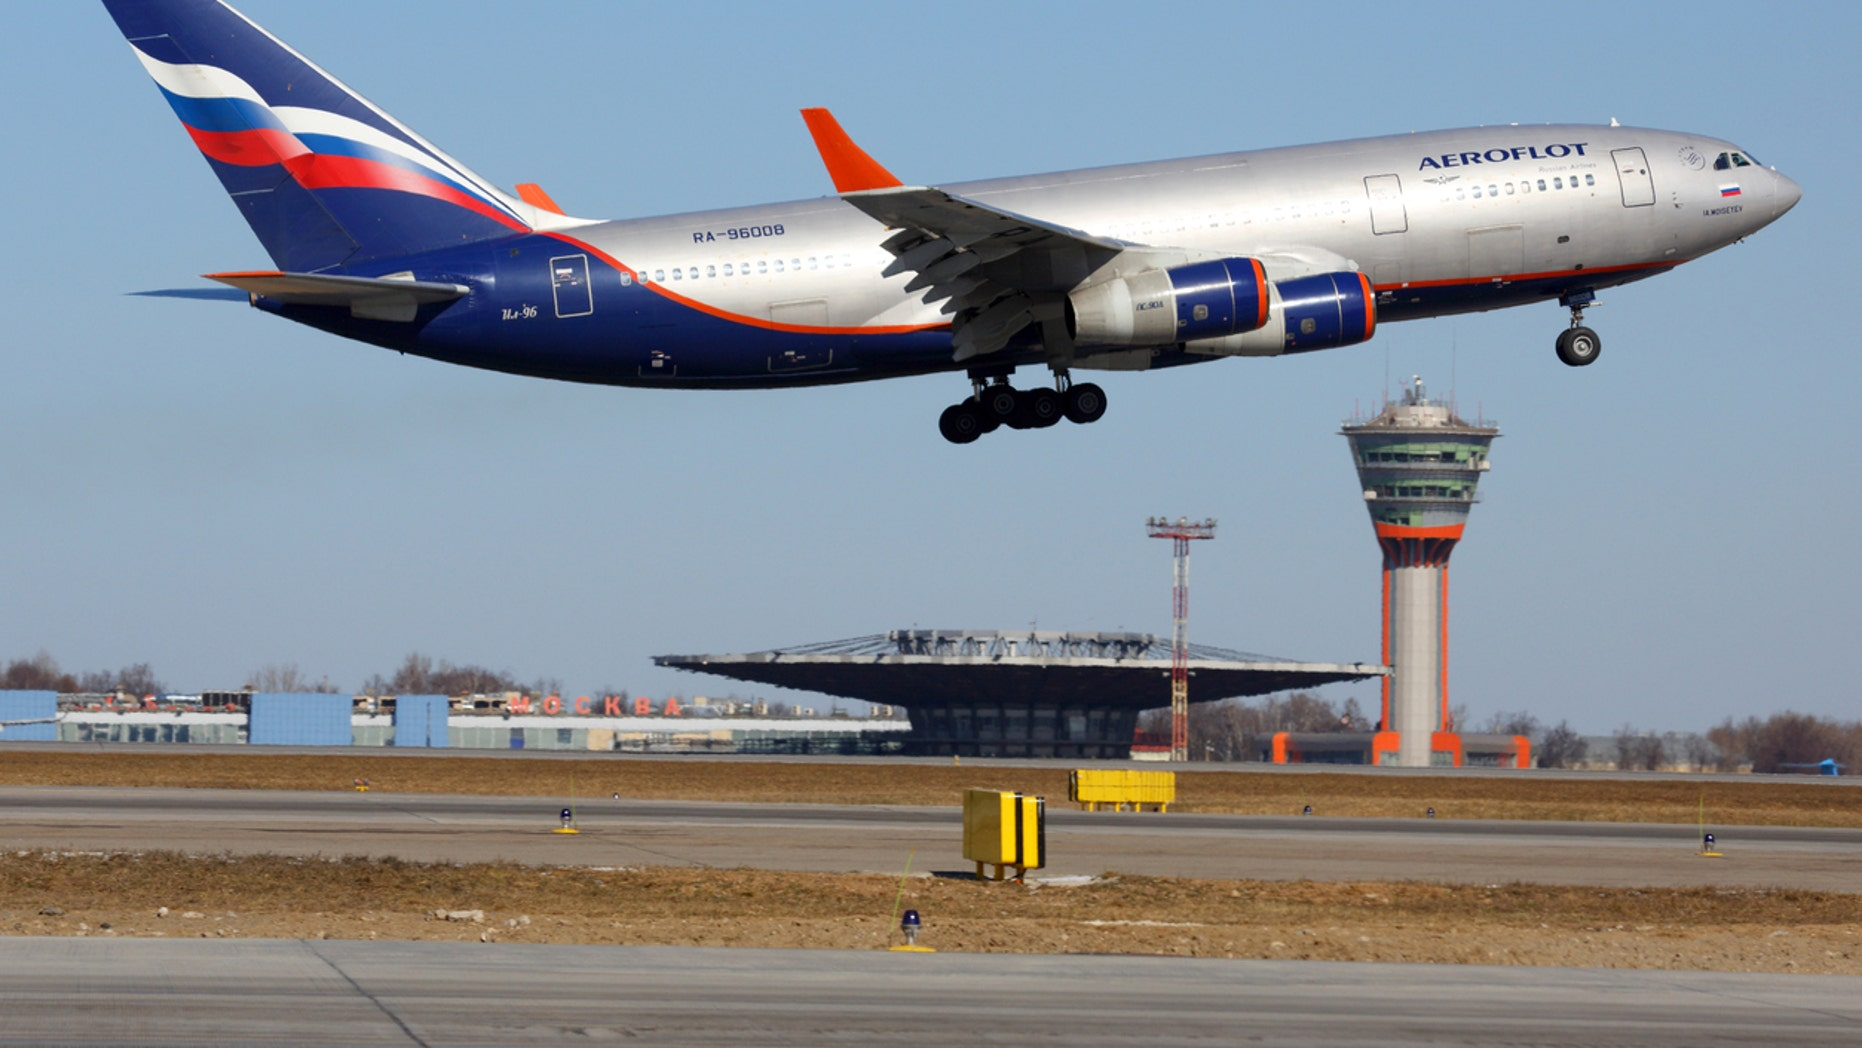 """Aeroflot staff reportedly threatened the group of U.S. citizens, all of Asian descent, that they would be """"deported"""" to India if they did not board the flight back to Delhi on their own."""